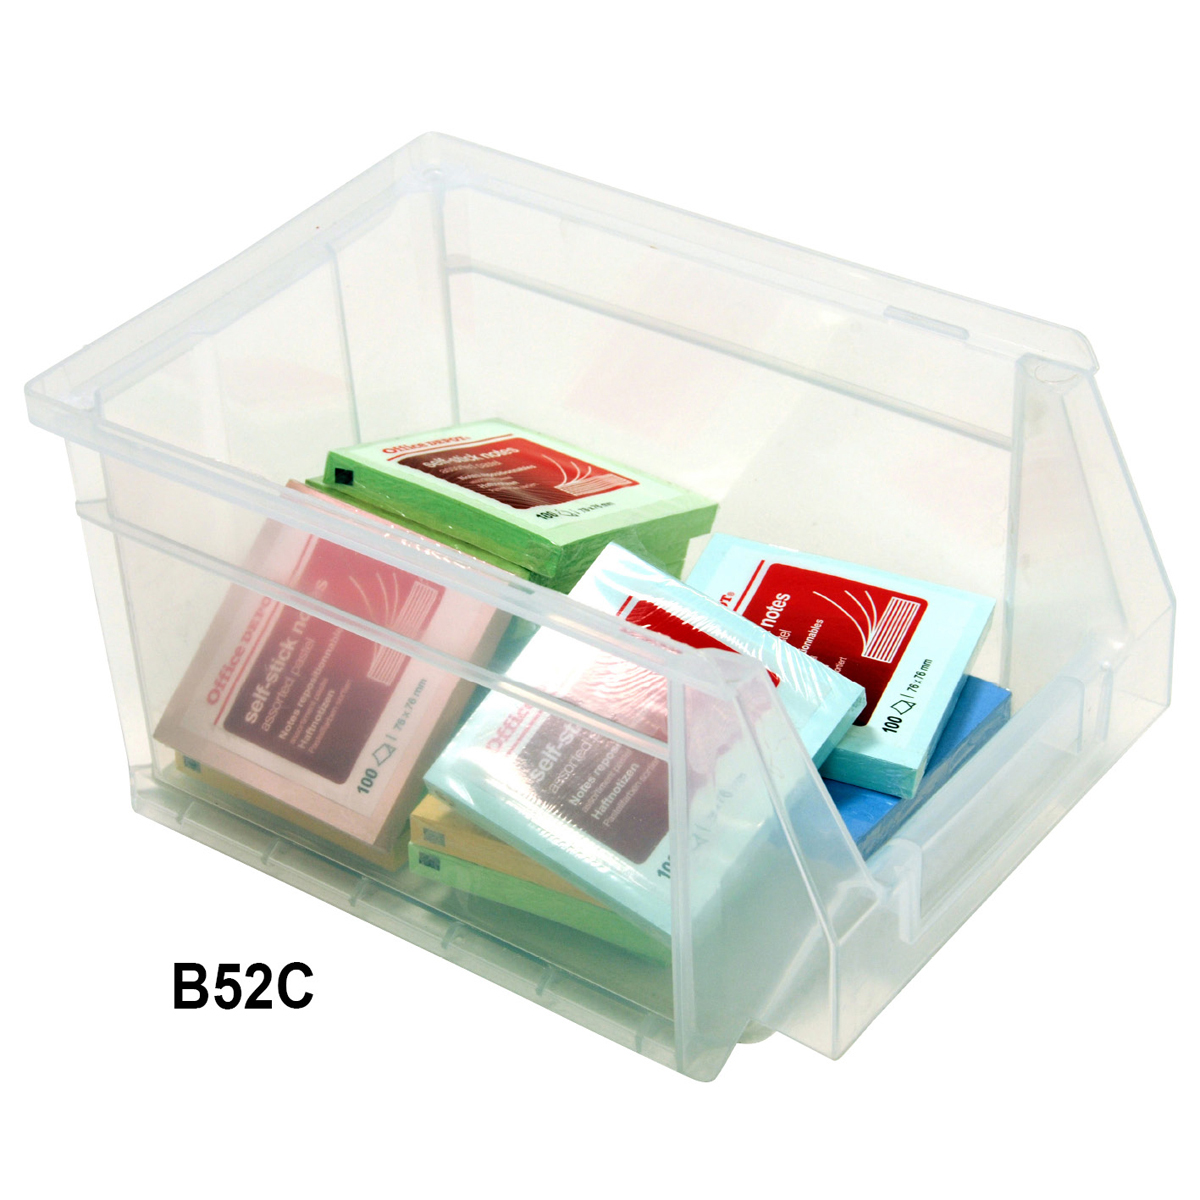 View Item Pack of 15 Premium Clear Bins 130mm High x 160mm Wide x 236mm Deep